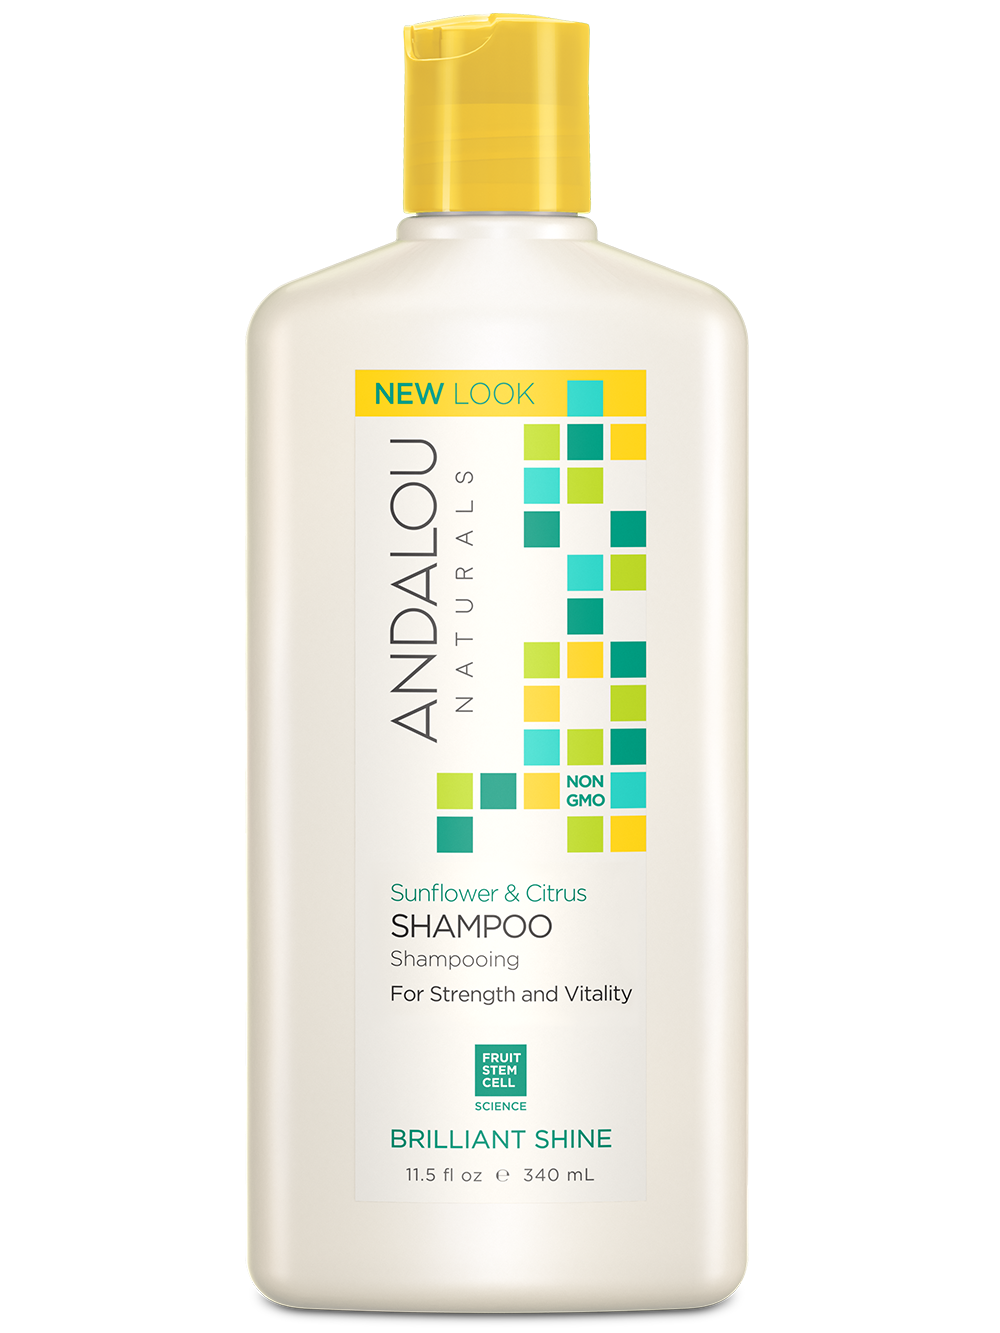 Andalou Naturals Sunflower & Citrus Brilliant Shine Shampoo - Harvest Haven